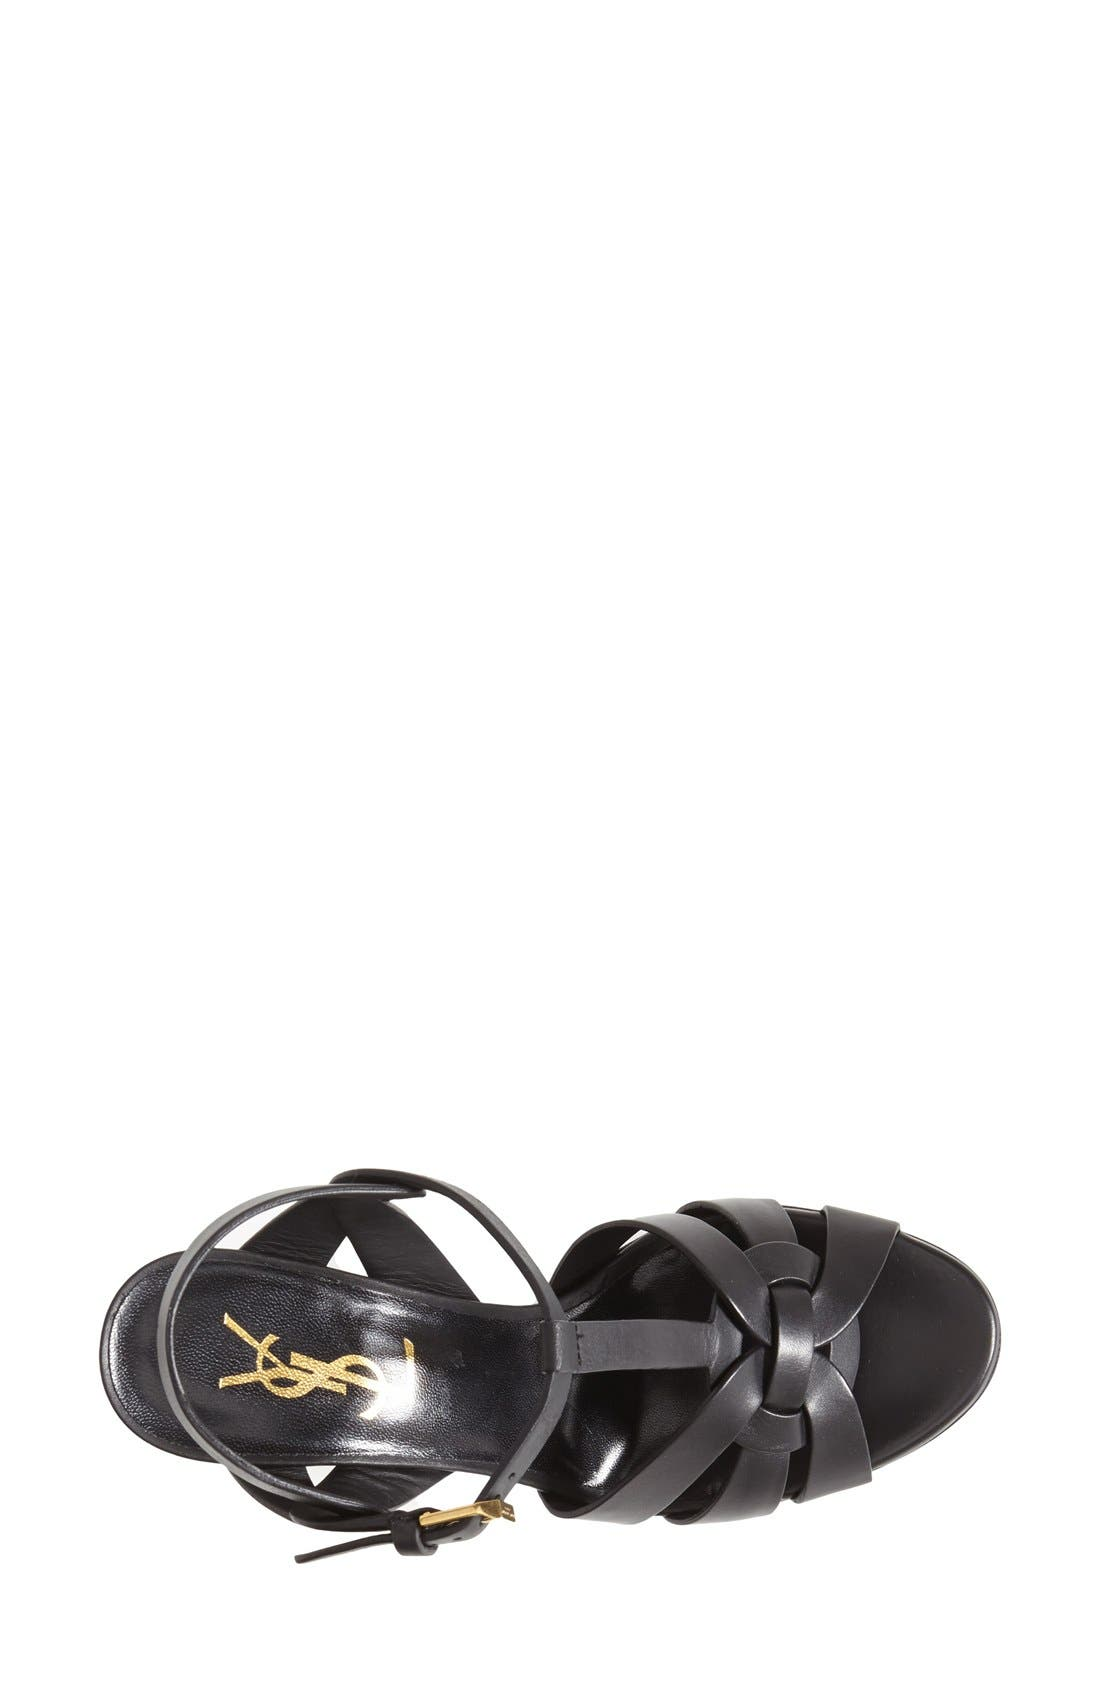 SAINT LAURENT, Tribute T-Strap Sandal, Alternate thumbnail 3, color, 001